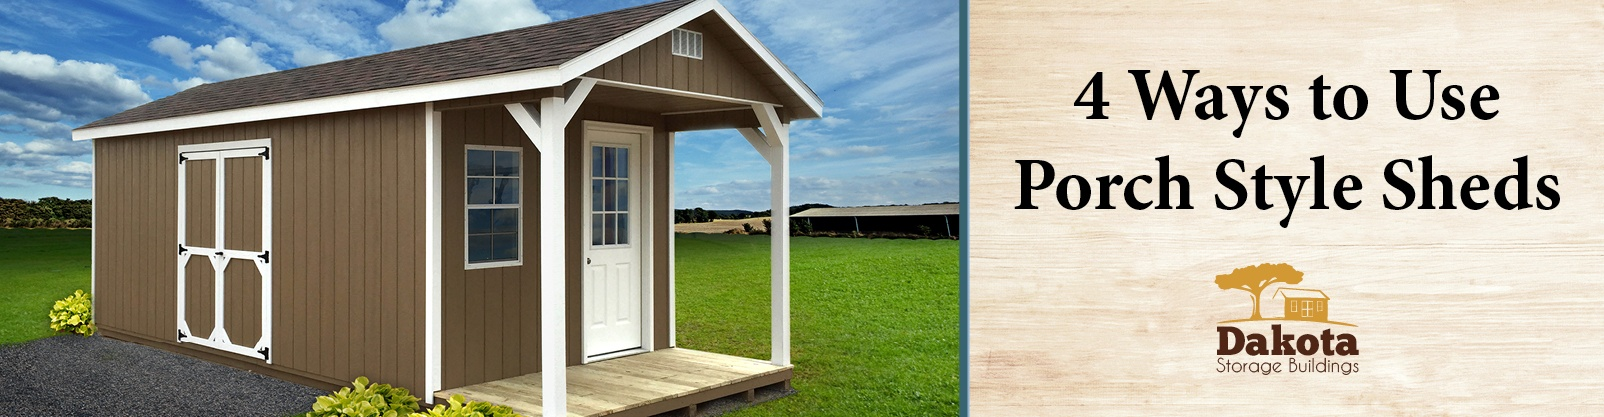 4 Ways to Use Porch Style Sheds